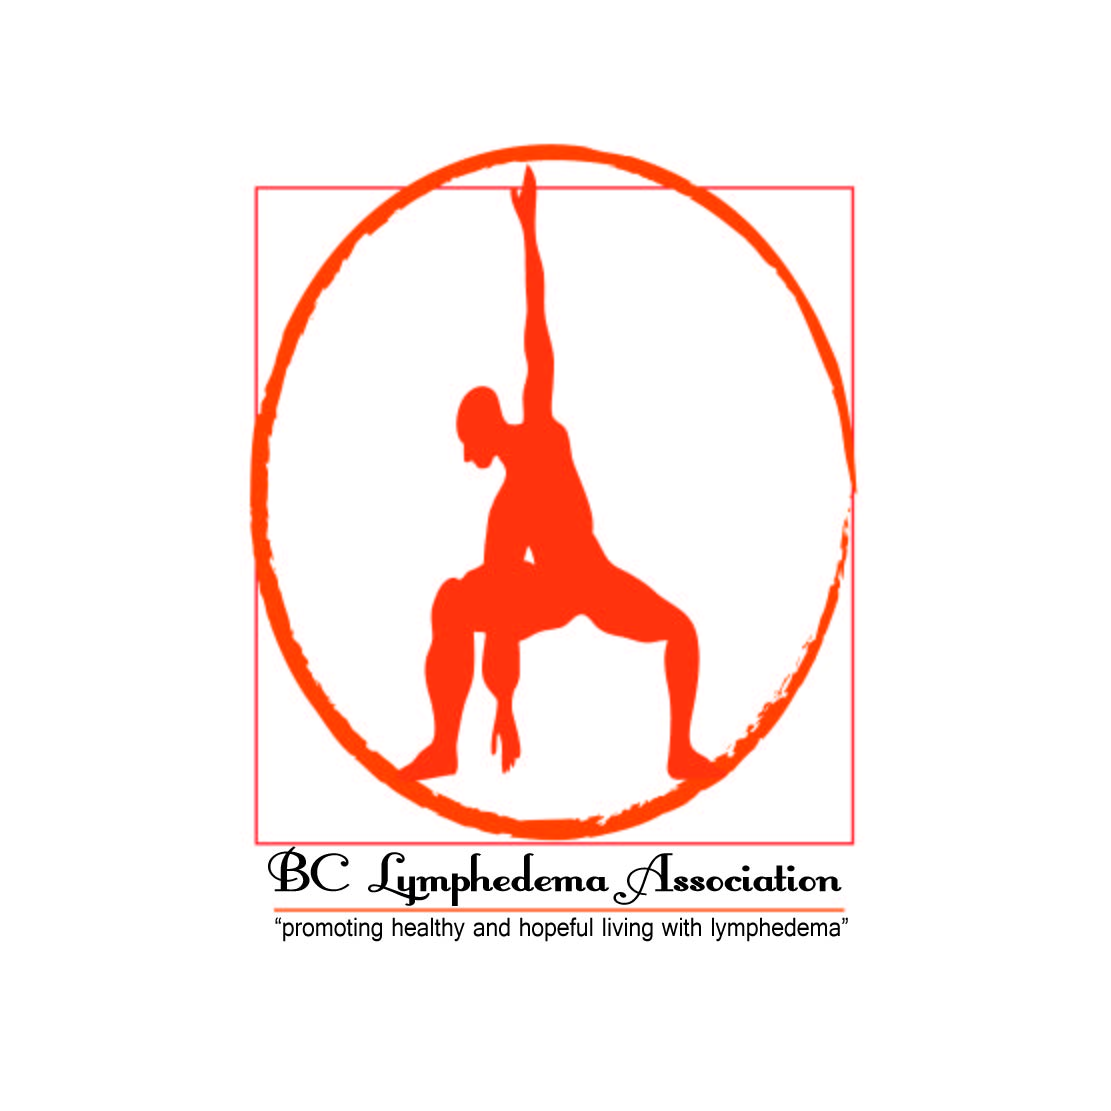 Logo Design by Saunter - Entry No. 3 in the Logo Design Contest BC Lymphedema Association.